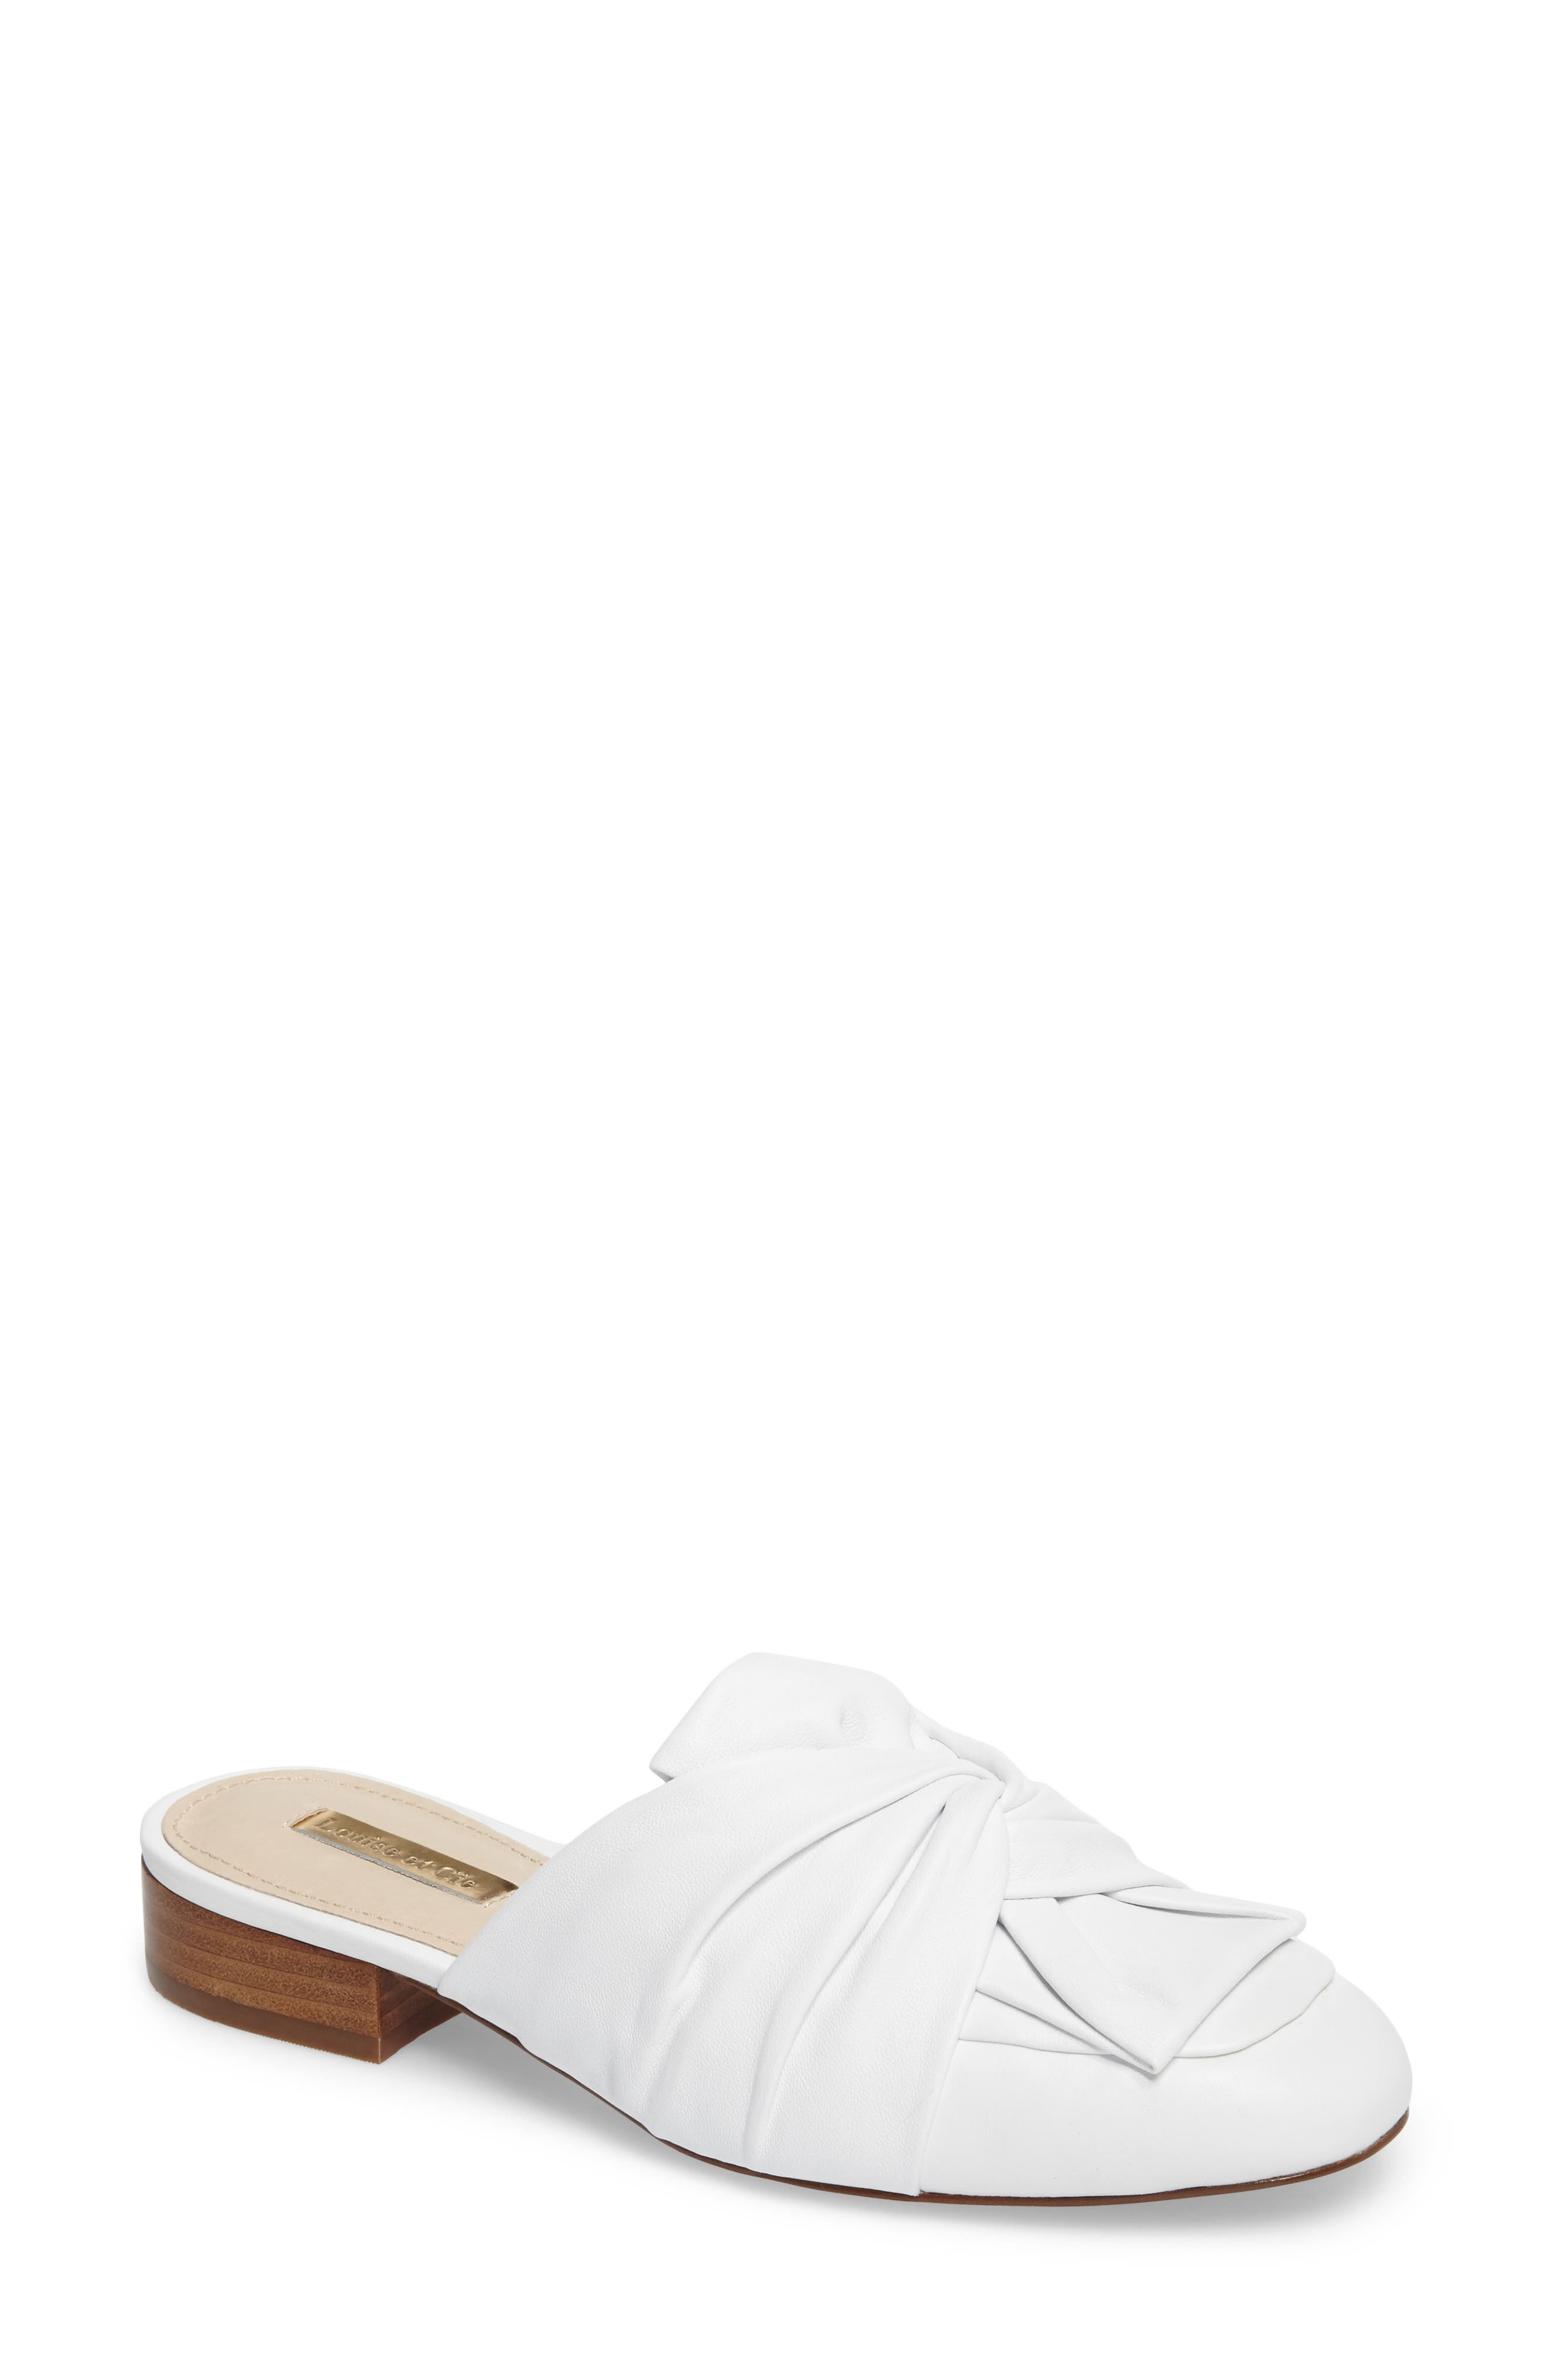 Louise et Cie Bylot Twist Mule (Women)